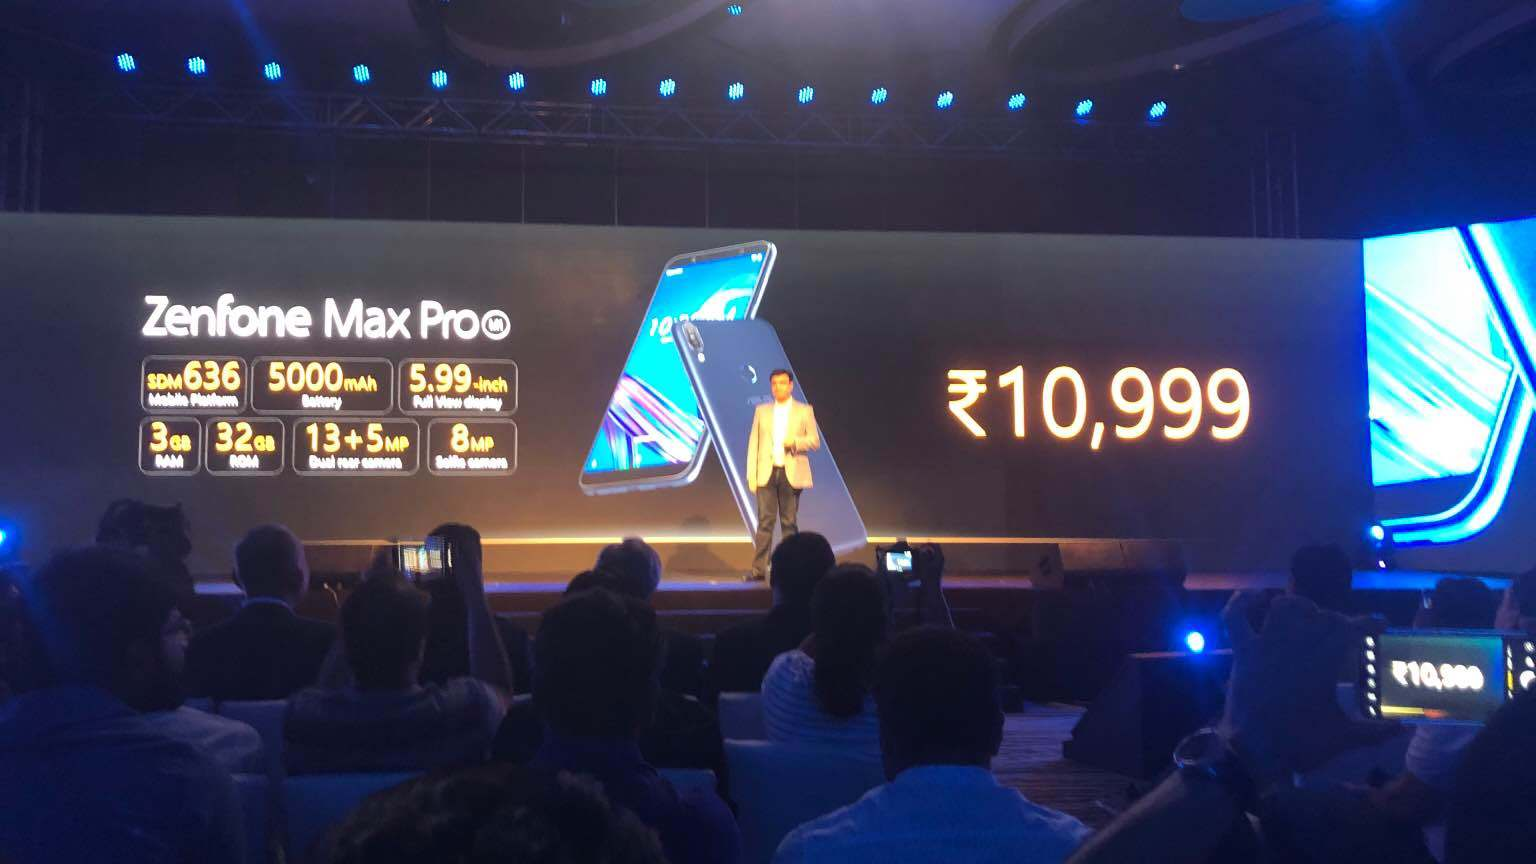 Asus Zenfone Max Pro M1 FAQs Pros Cons User Queries And